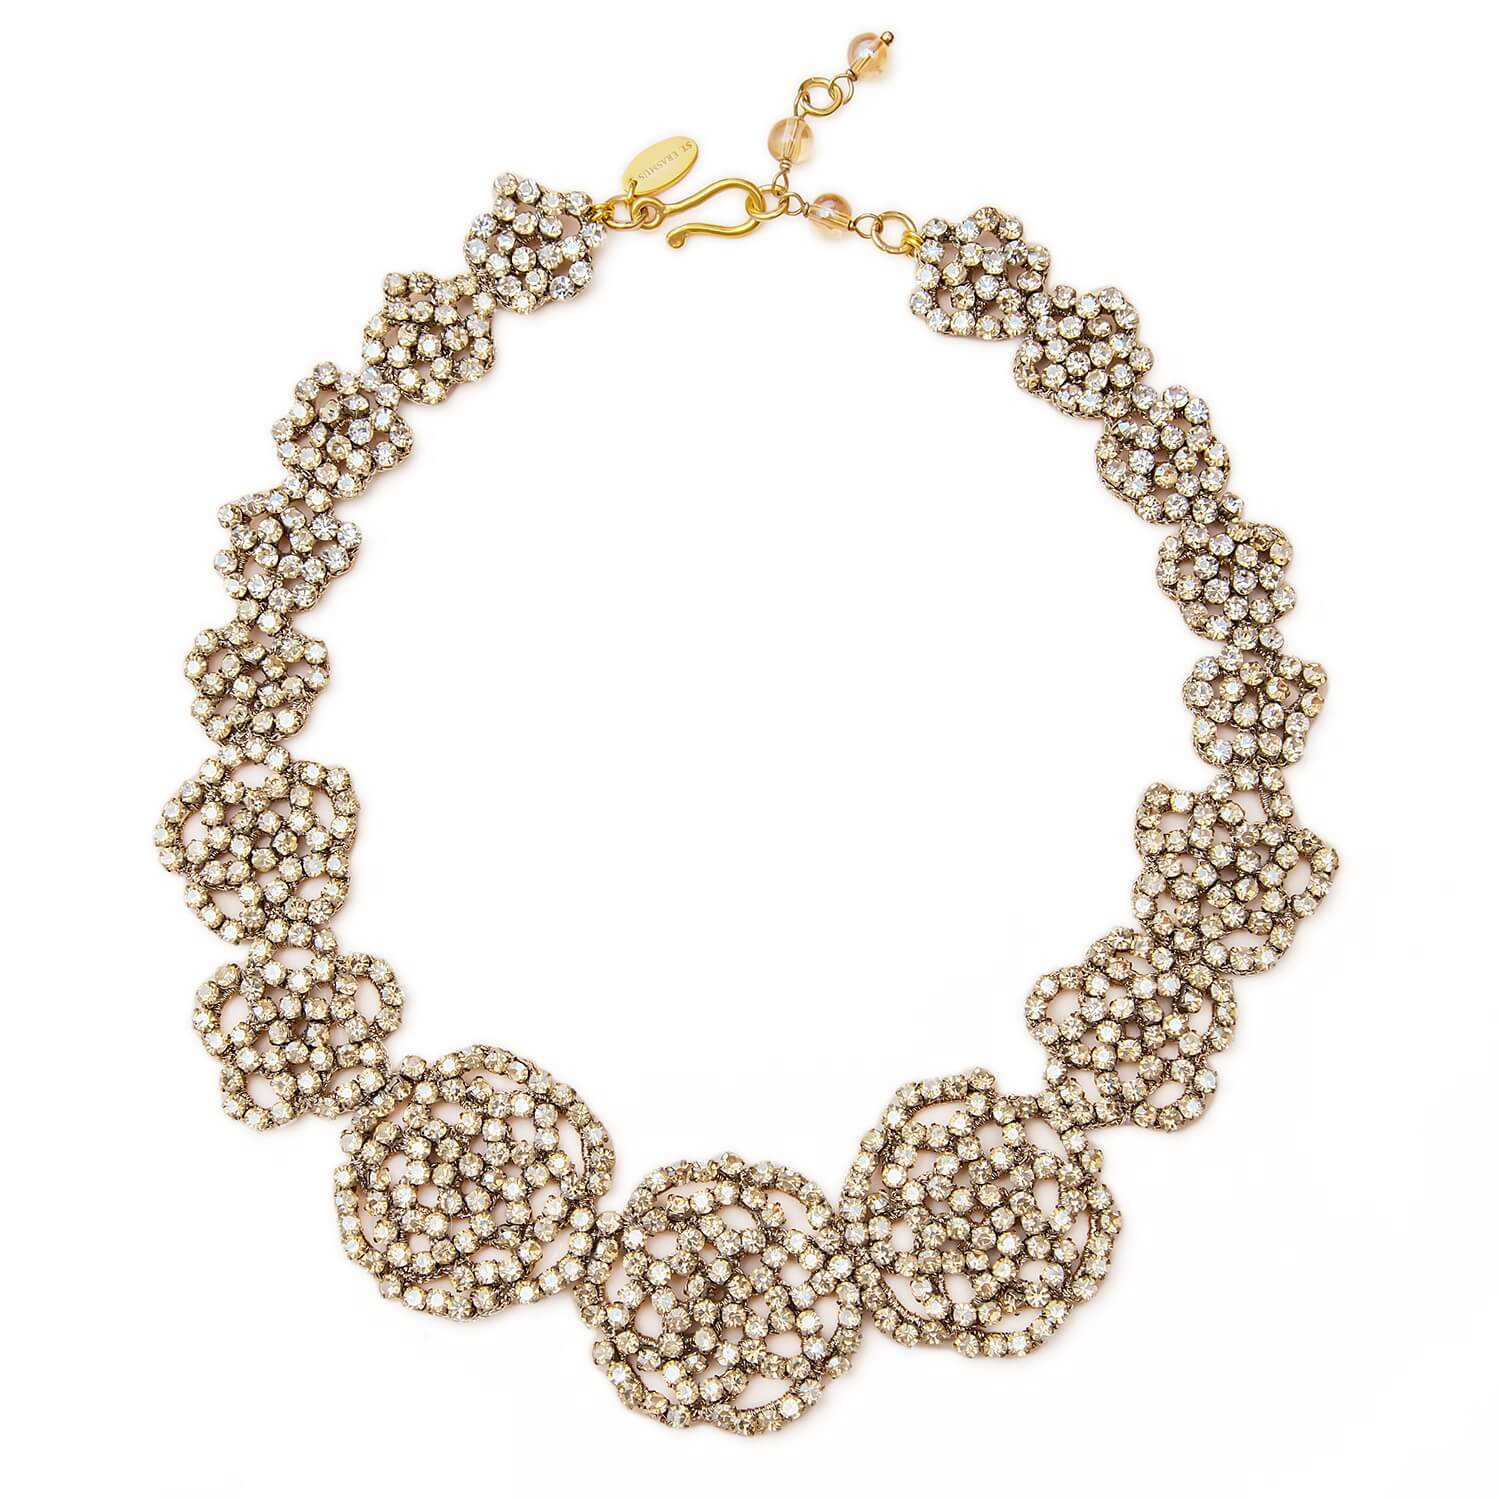 Elspeth Champagne Necklace